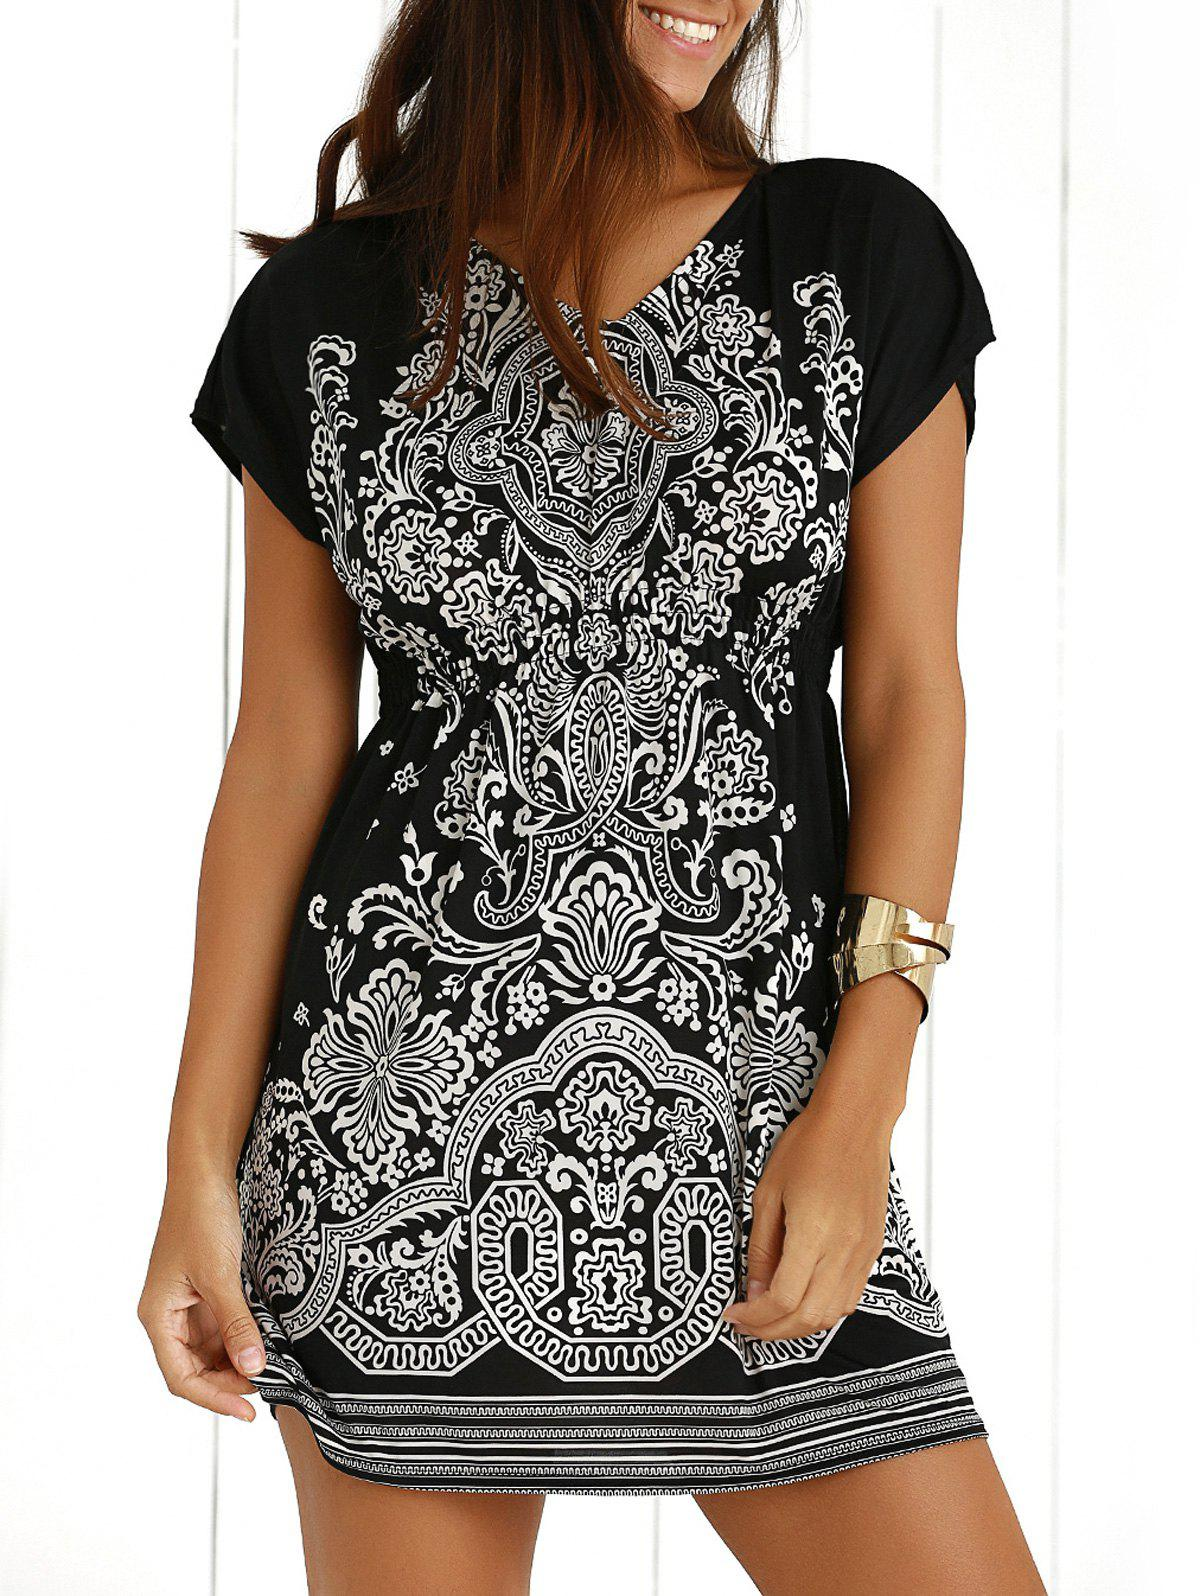 Casual Ethnic Summer Mini DressWOMEN<br><br>Size: ONE SIZE; Color: BLACK; Style: Casual; Material: Polyester; Silhouette: A-Line; Dresses Length: Mini; Neckline: V-Neck; Sleeve Length: Short Sleeves; Pattern Type: Print; With Belt: No; Season: Summer; Weight: 0.1950kg; Package Contents: 1 x Dress;